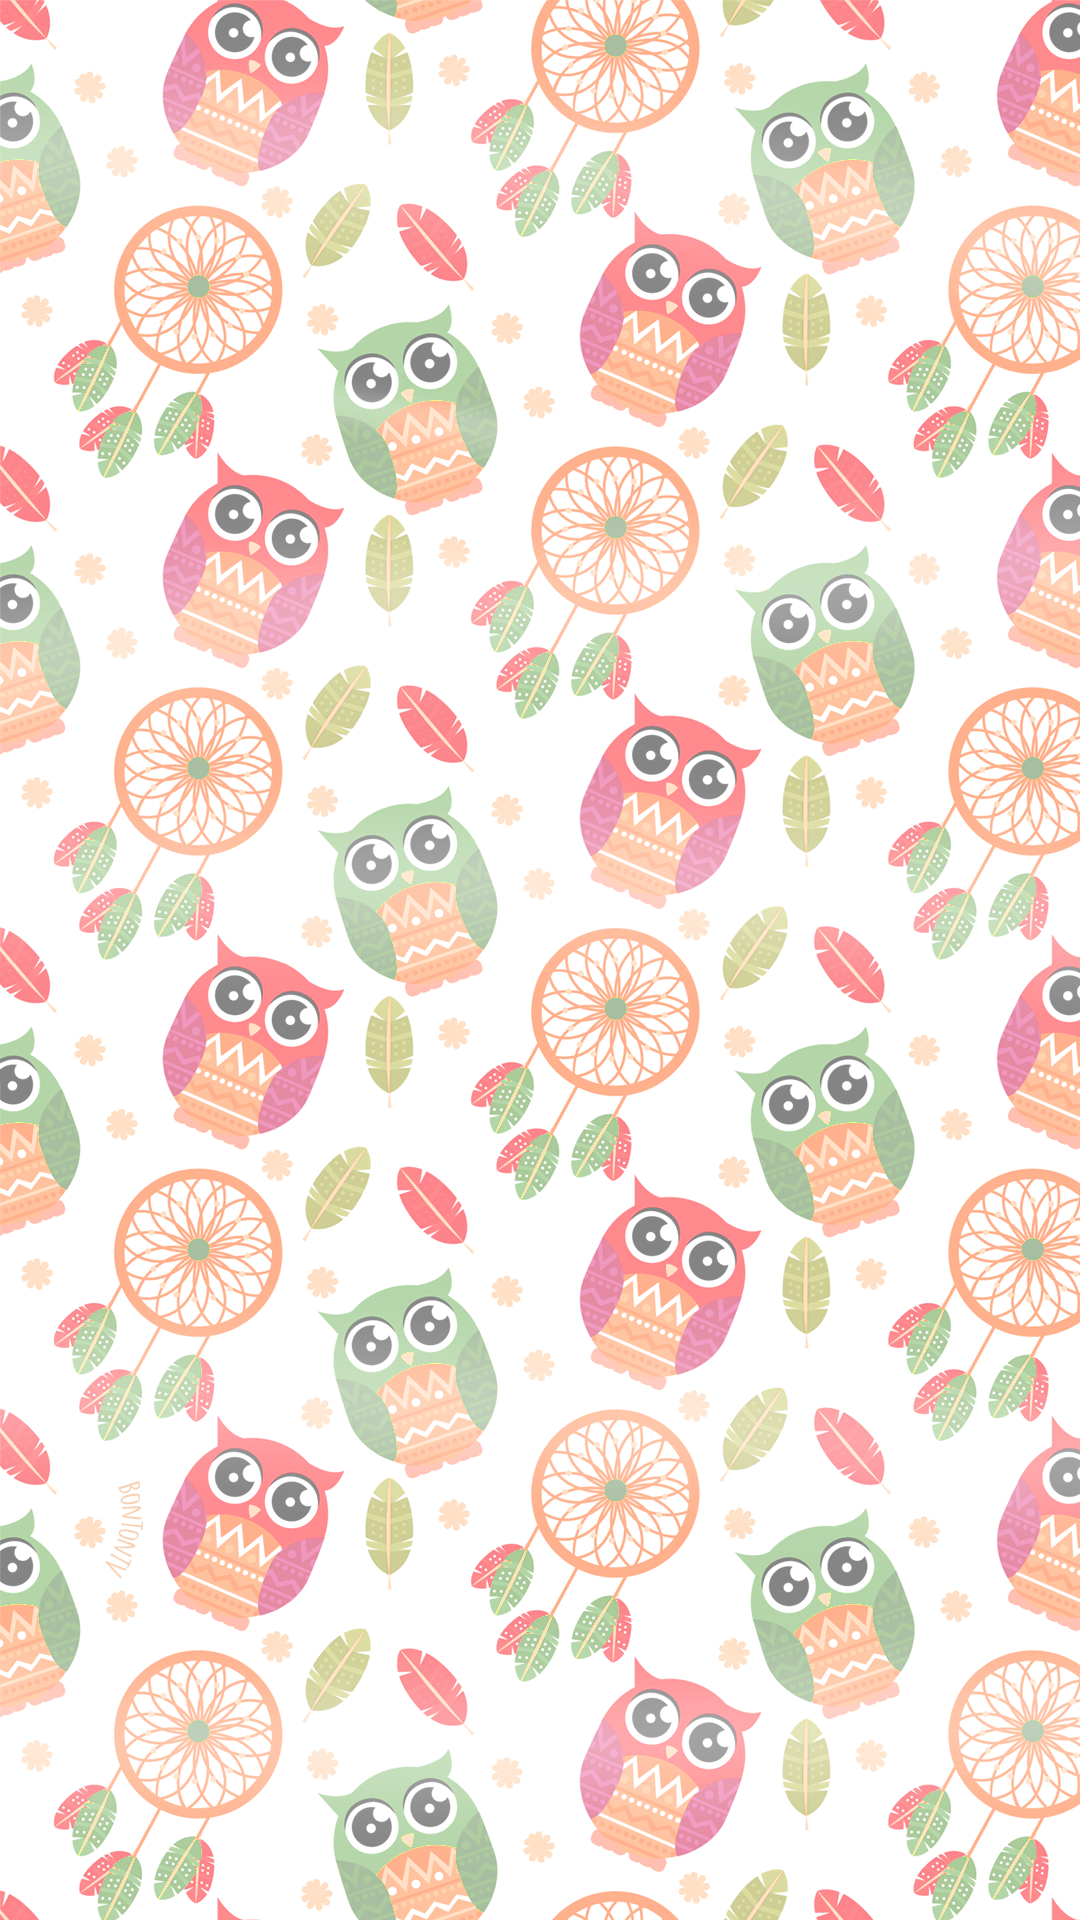 Cute Owl Wallpaper Download In 2020 Cute Owls Wallpaper Owl Wallpaper Owl Wallpaper Iphone